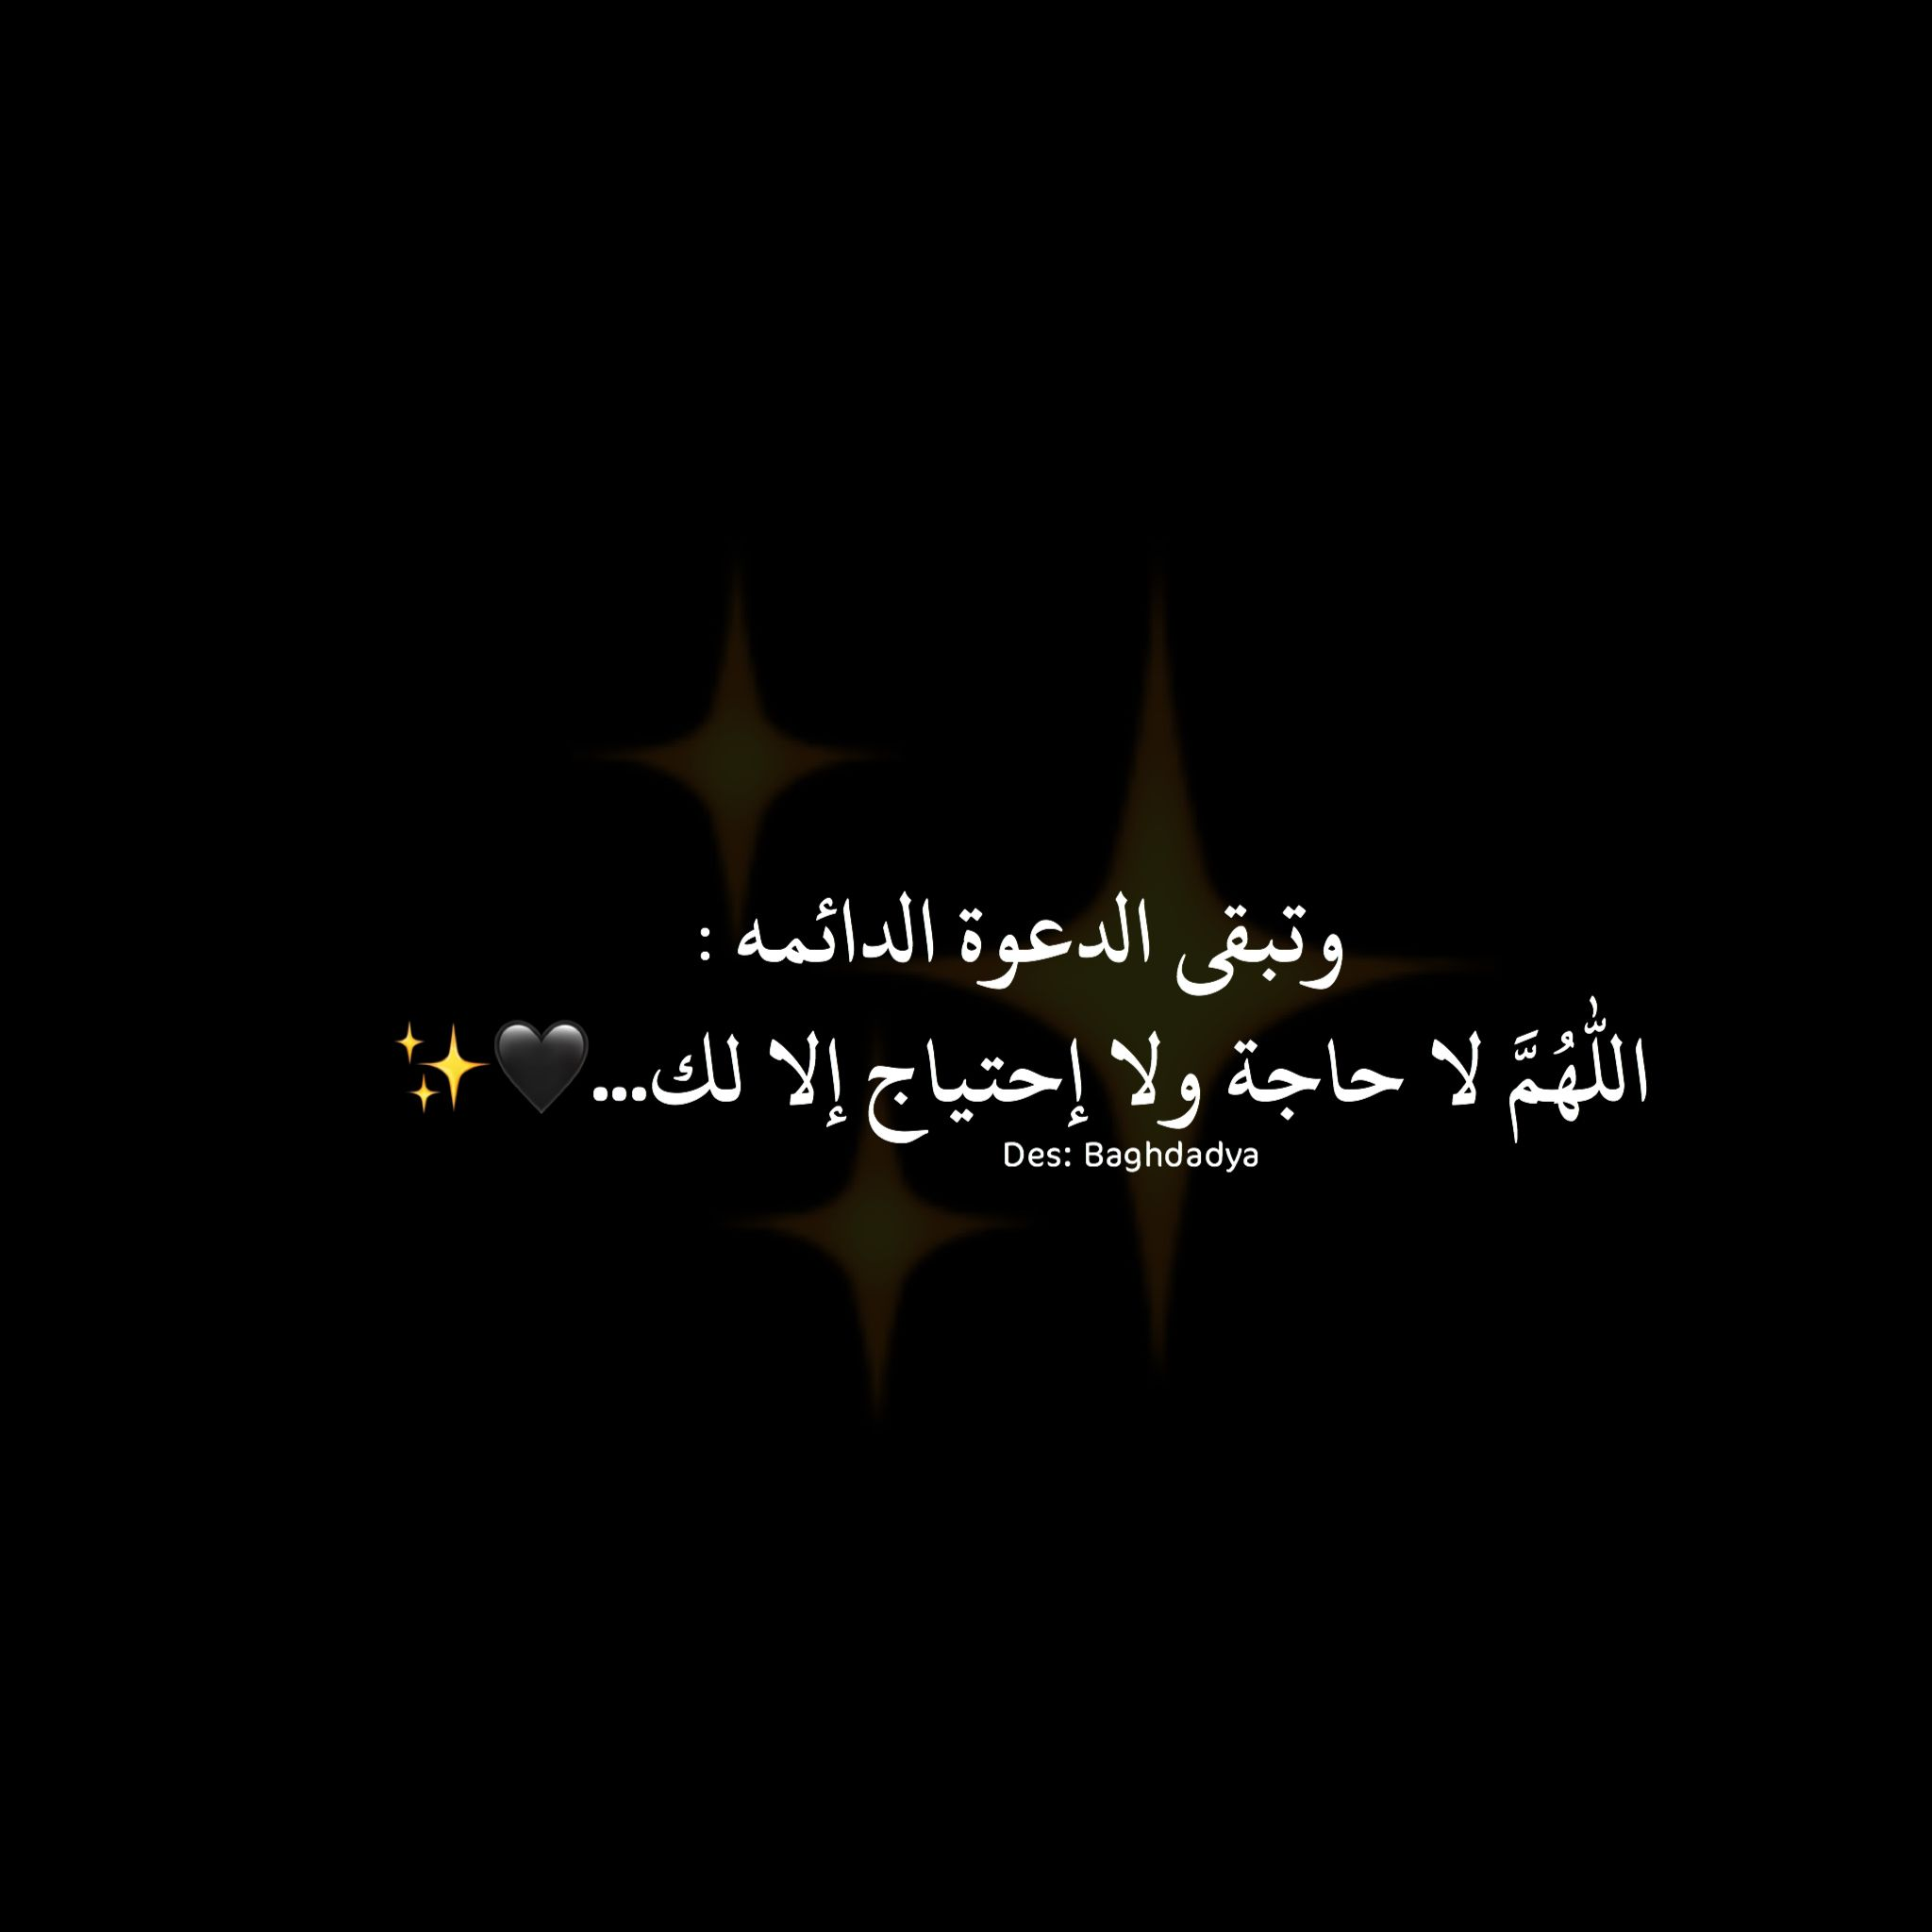 Pin By Ssam Ssi Nae Cha G Rin On عبارات Quran Verses Arabic Quotes Life Rules